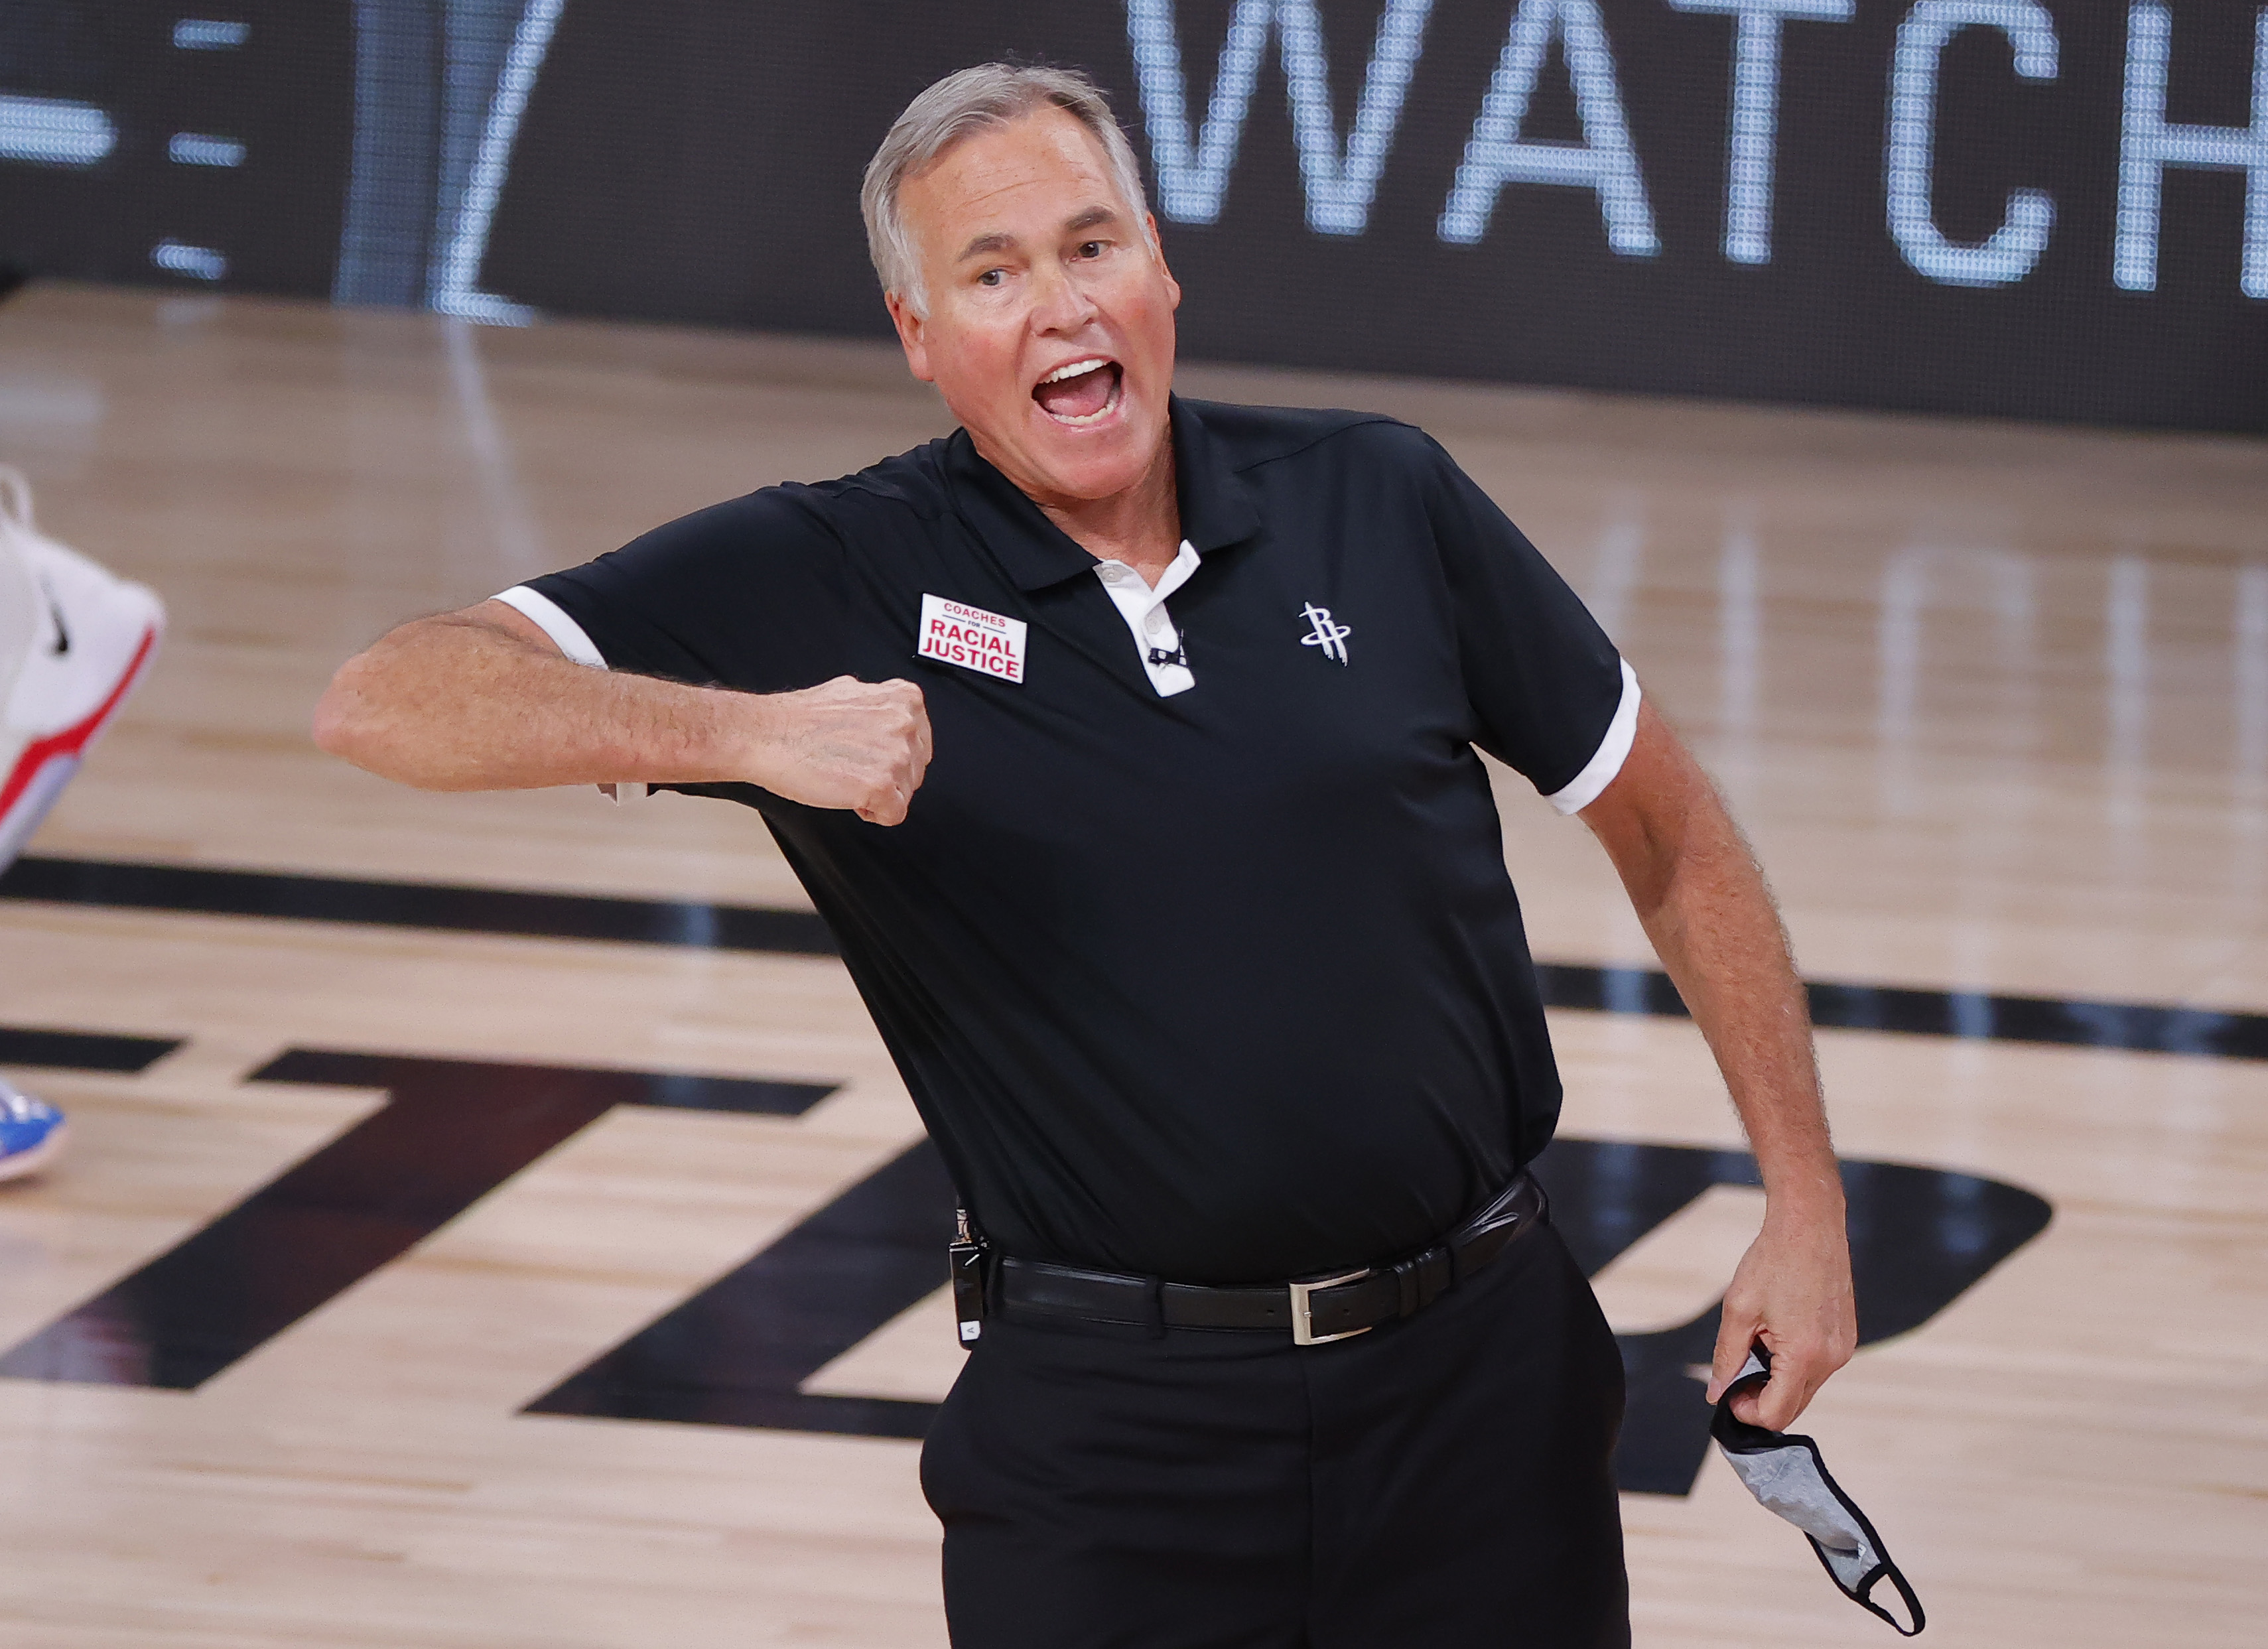 NBA: Mike D'Antoni Is Ironically Now an Assistant Coach for His Former Star Player